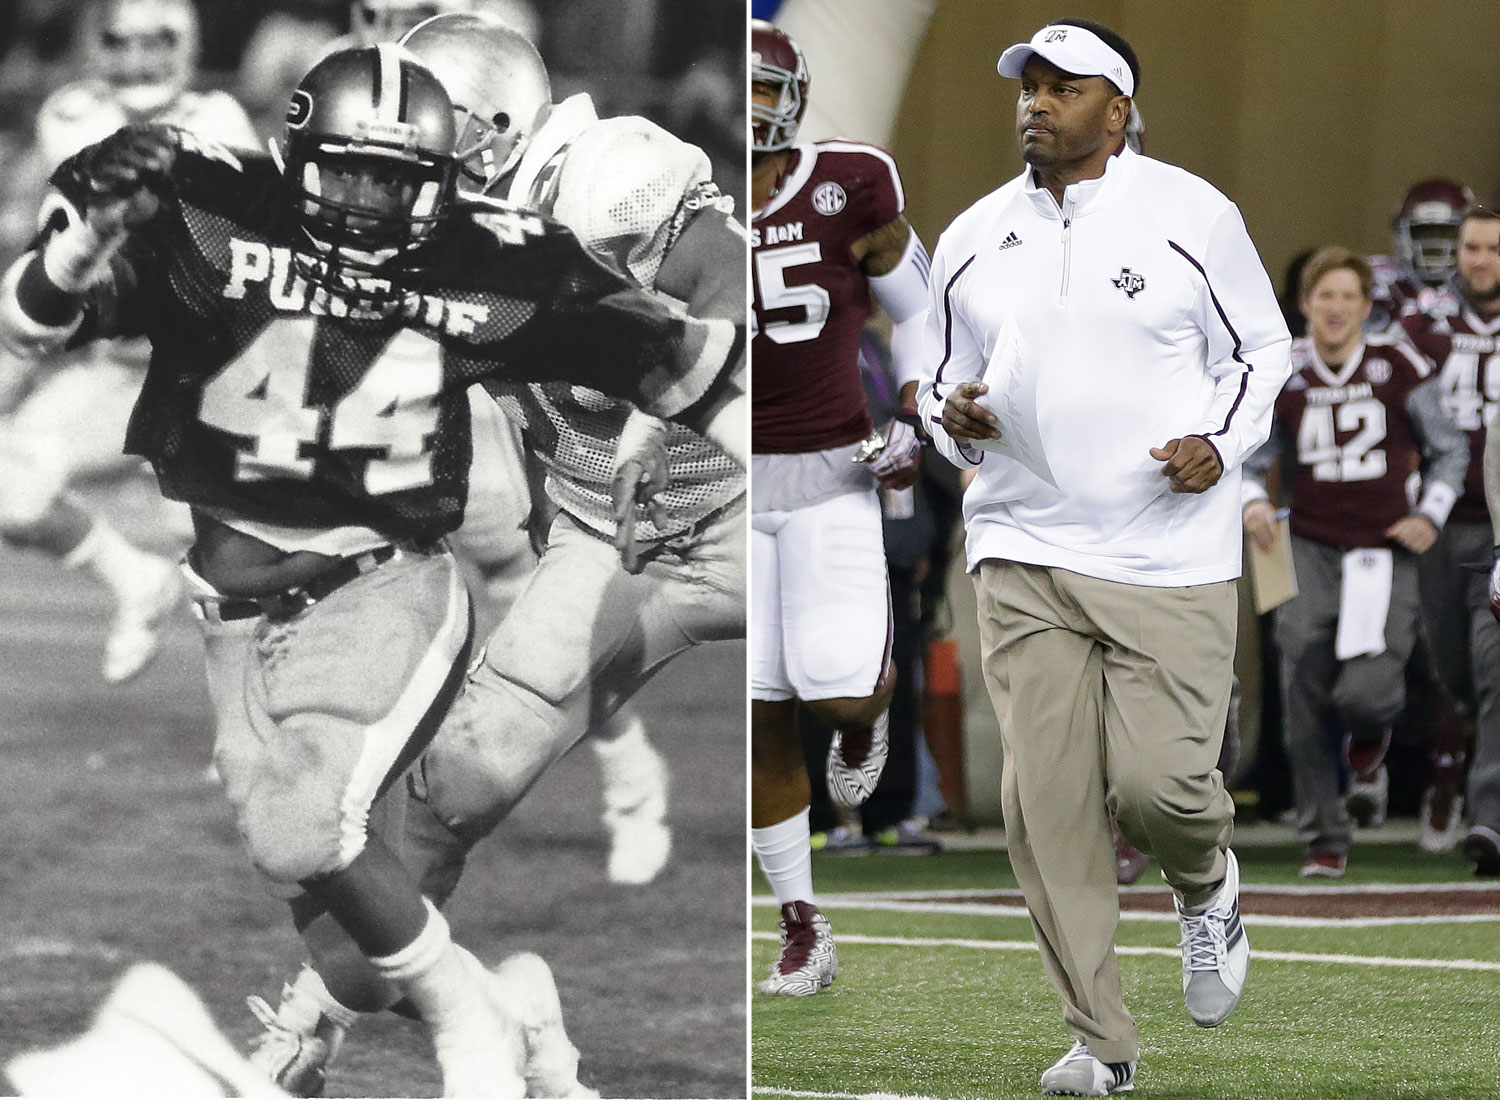 <b>Currently coaching:</b> Texas A&M<br><br> <b>College playing career:</b> Played linebacker at Purdue from 1983-86. While he began his career as a walk-on, he was a four-year starter for the Boilermakers. He is seventh in school history in tackles (375) -- three spots behind Rod Woodson, who was his teammate all four years he was at Purdue. (Purdue Athletics Communications/Associated Press)